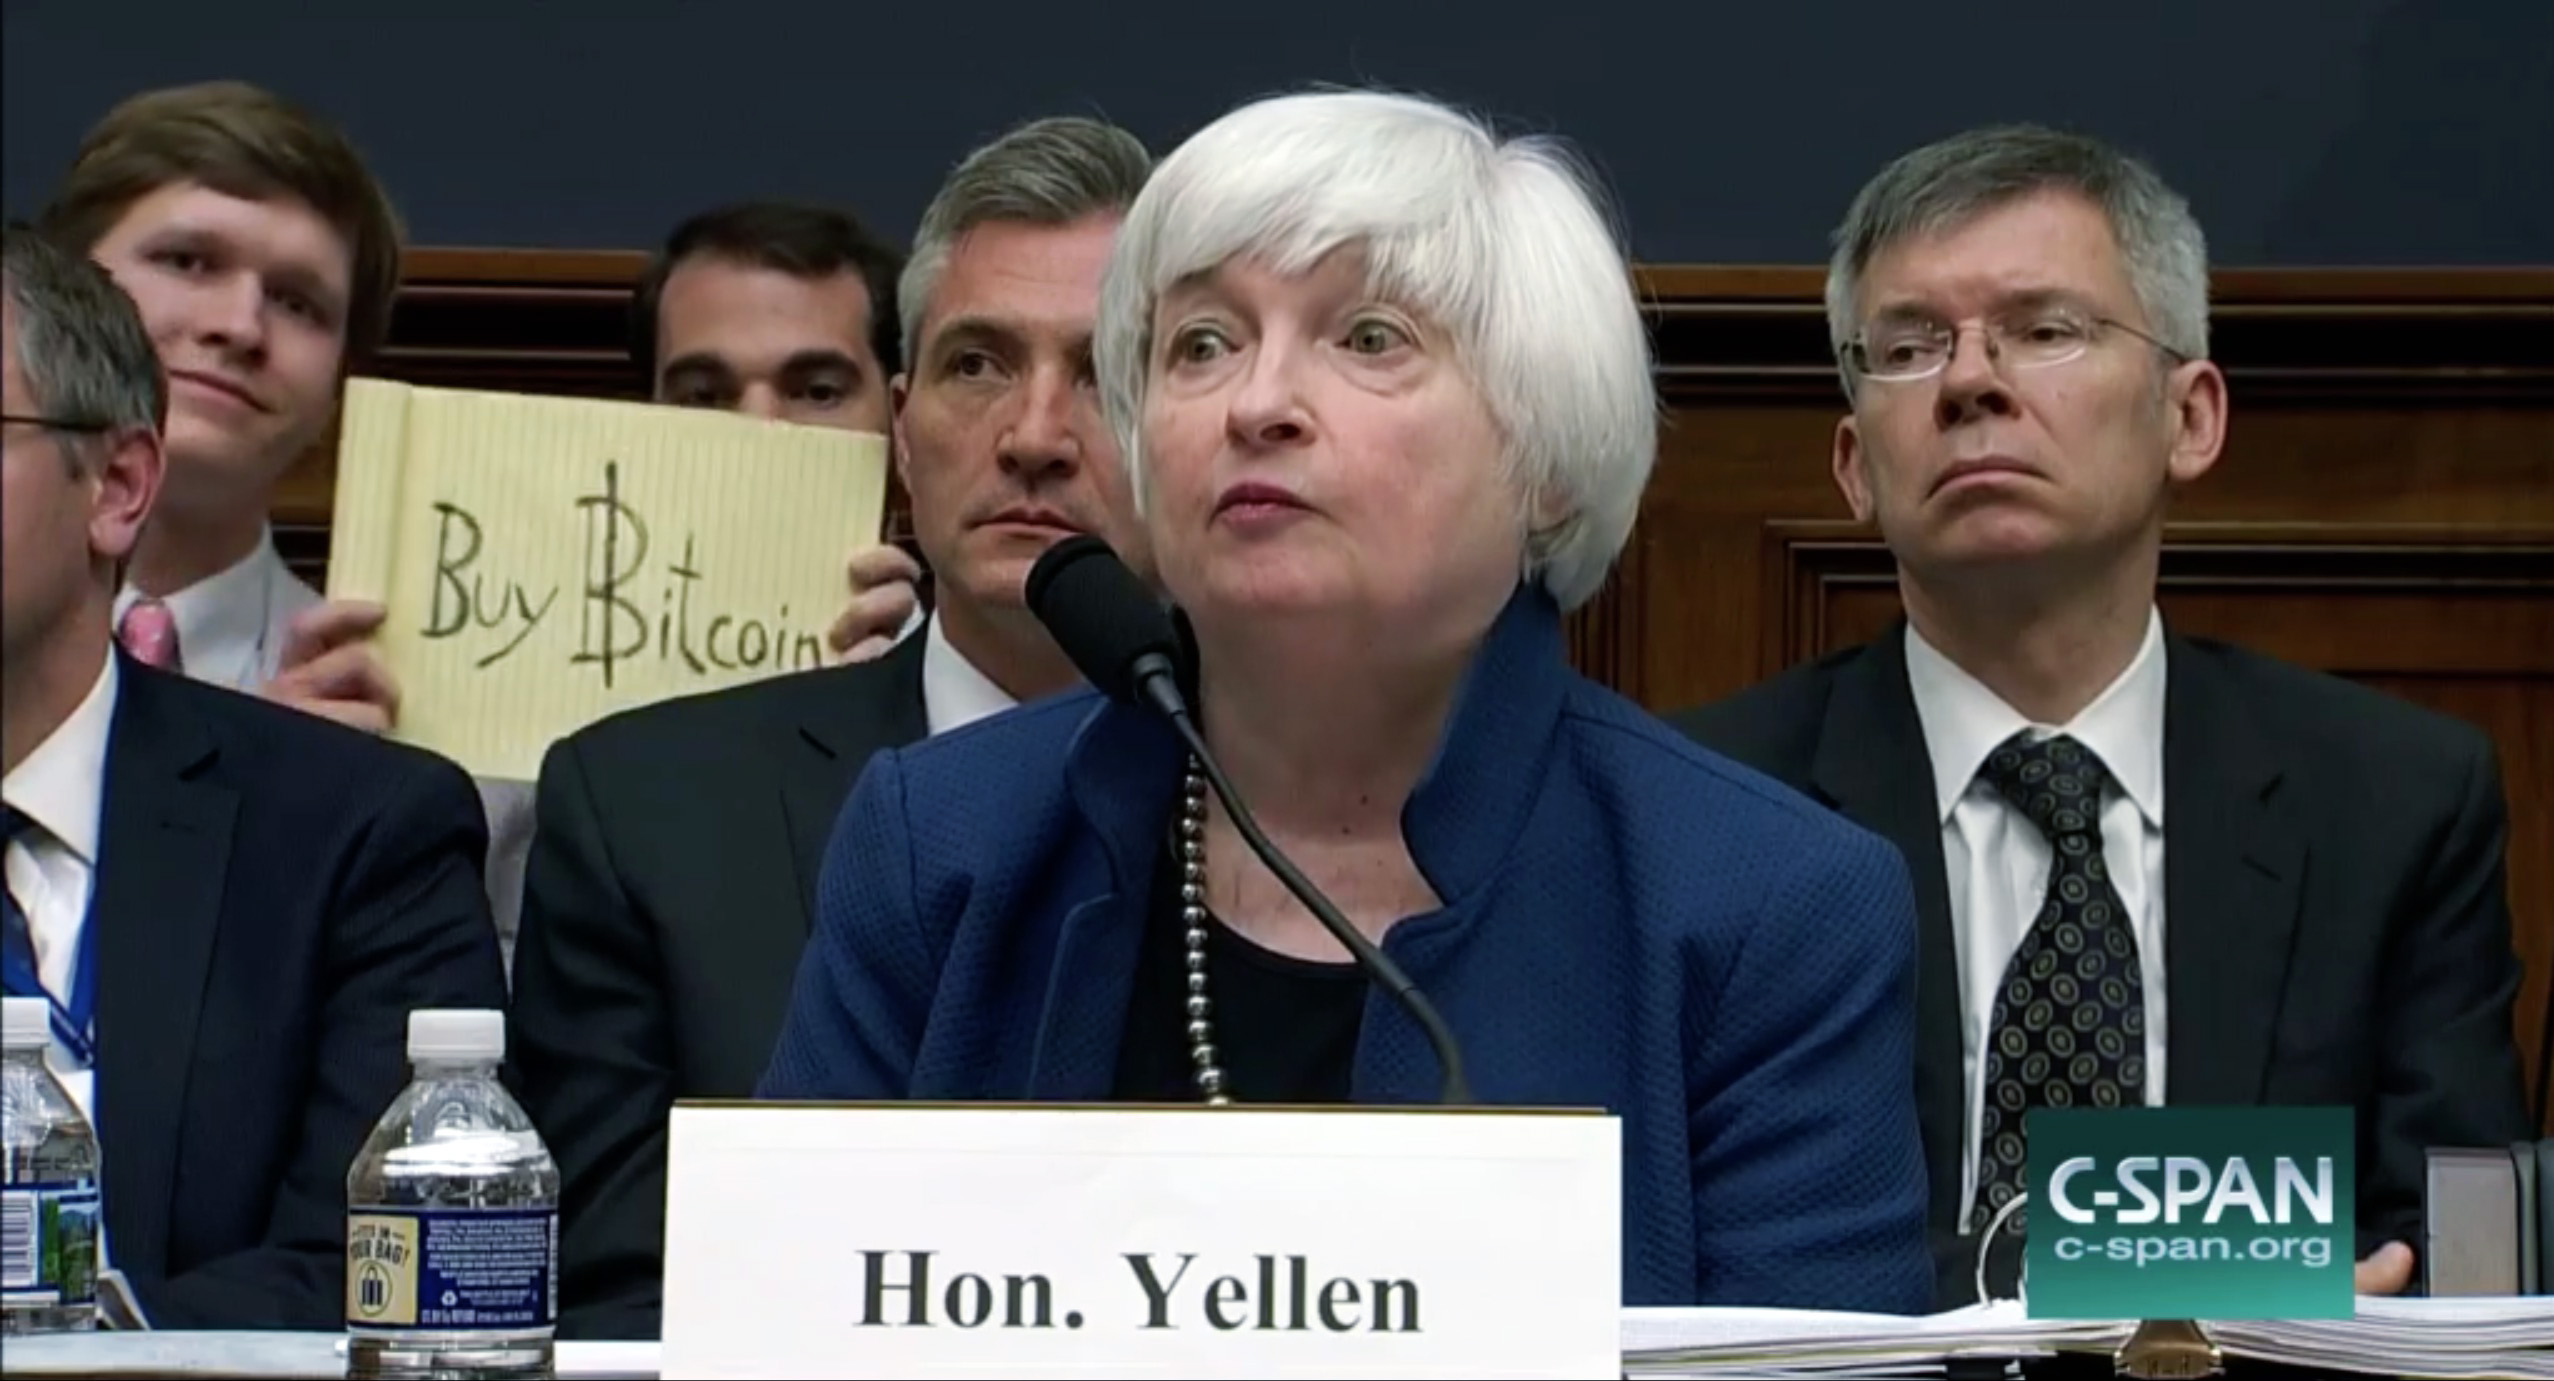 Bitcoin enthusiasts photobombed Federal Reserve chair Janet Yellen as she testified in front of Congress Wednesday, July 12, 2017.